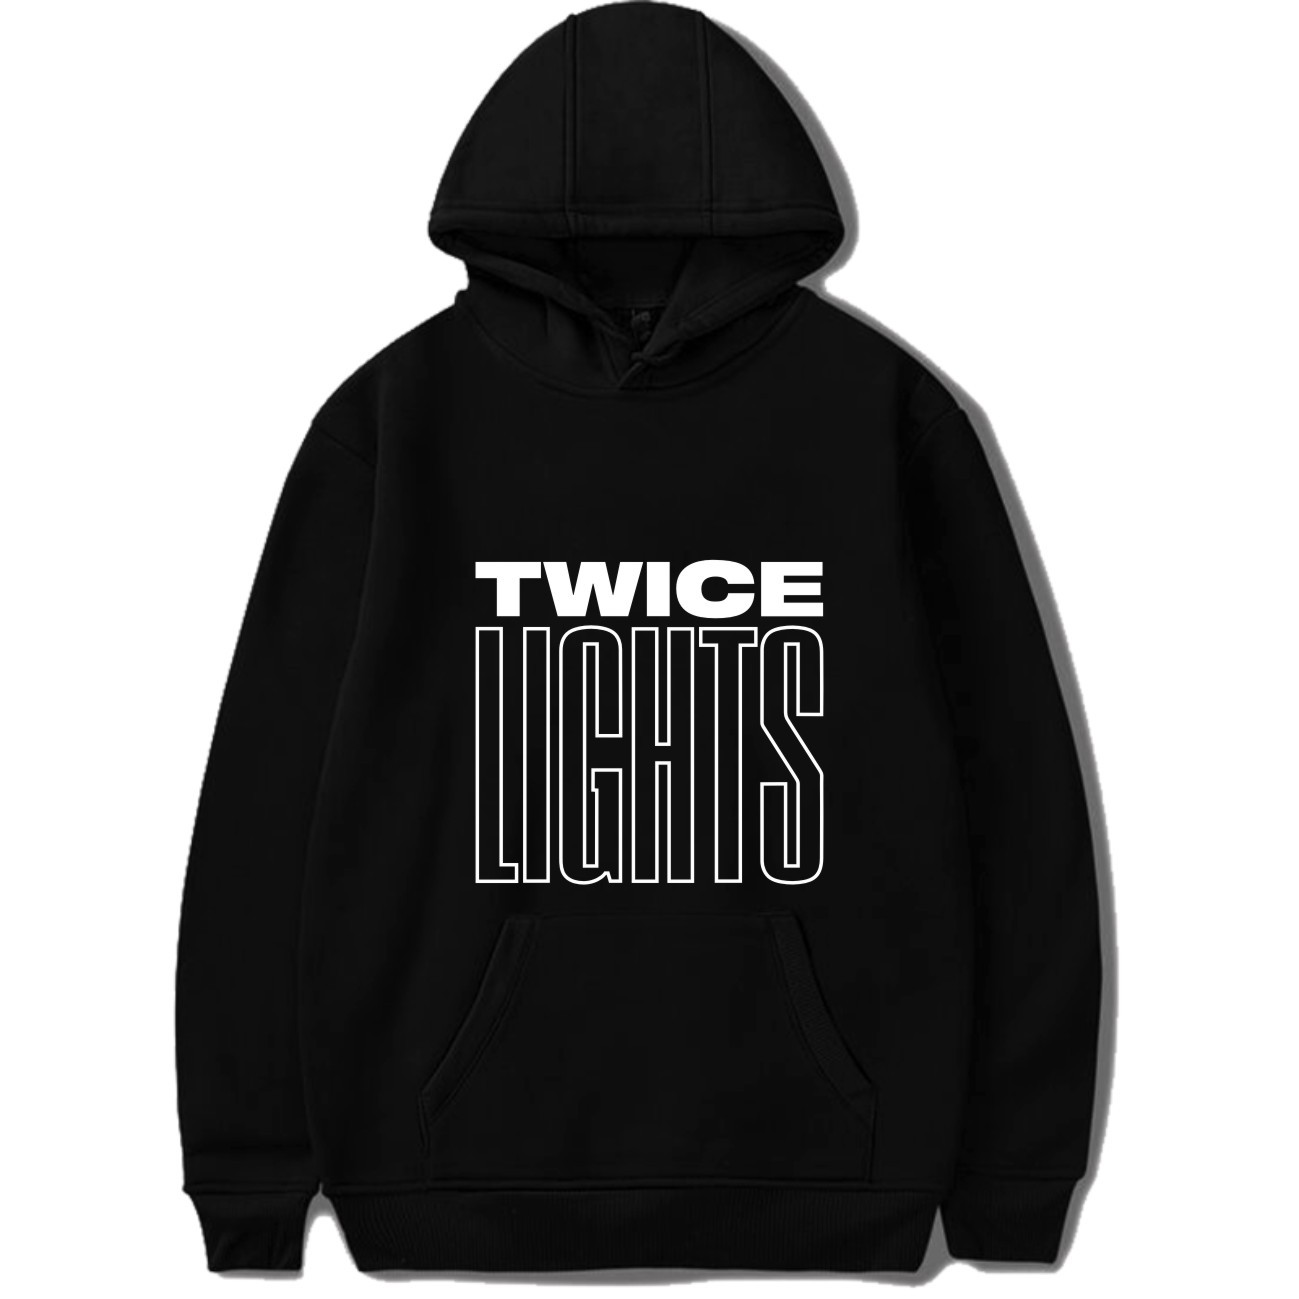 TWICE Korean Style Combination TWICELIGHTS Tour Concert Support The Same Paragraph Kpop Cool Fashion New Hoodies Sweatshirt